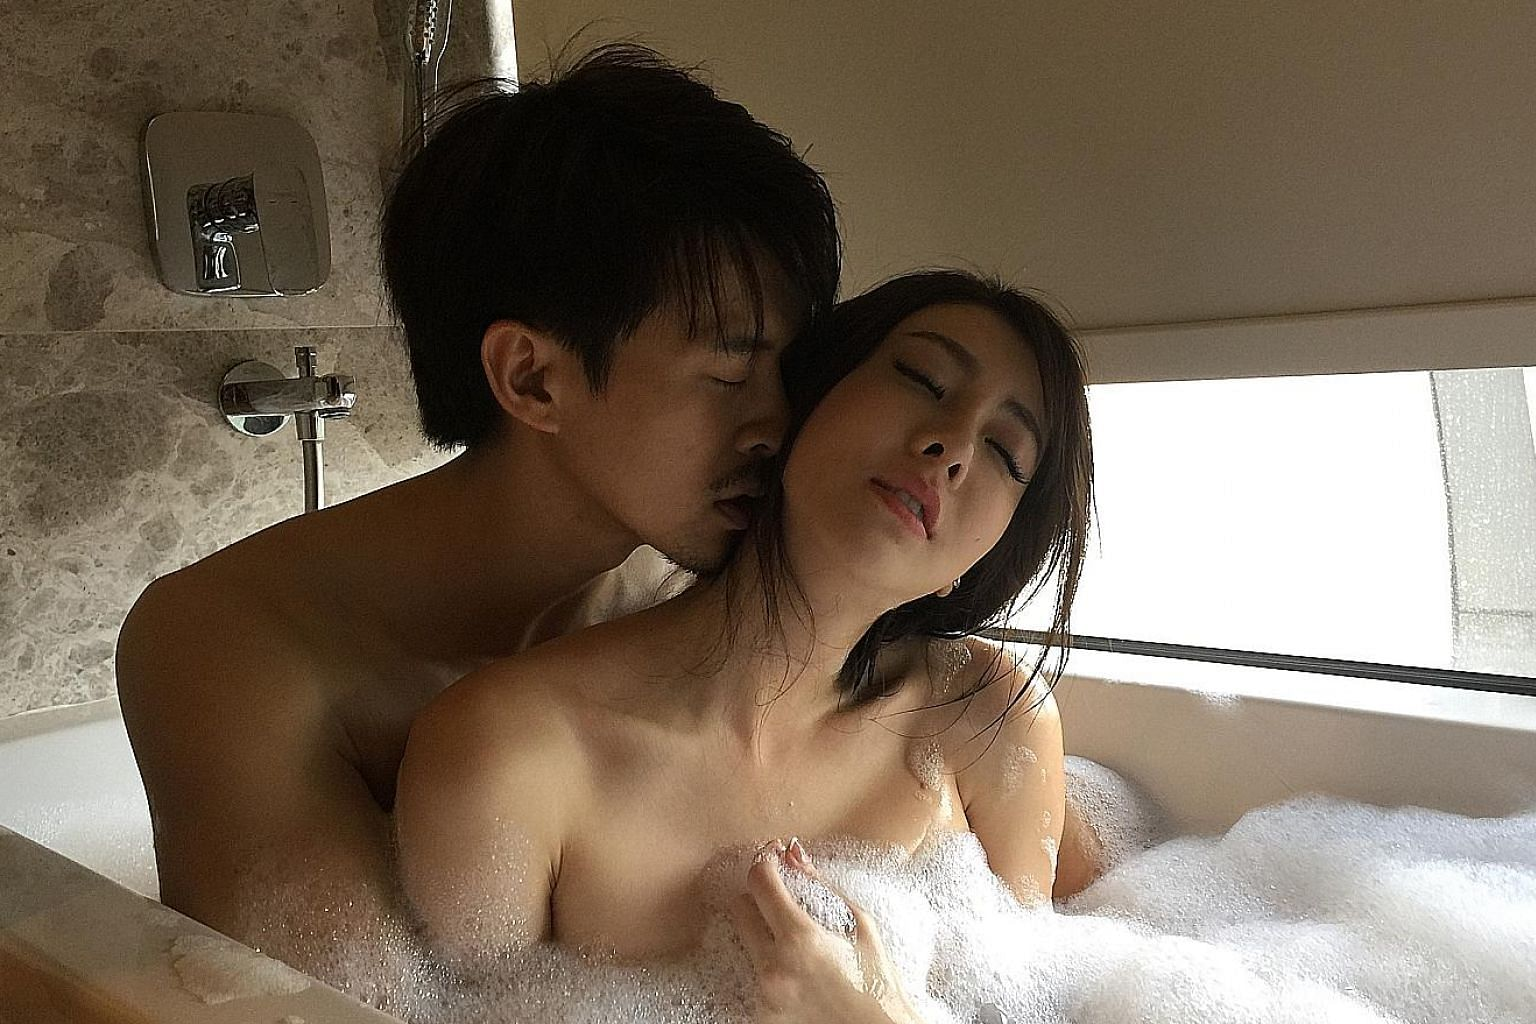 Louis Wu and Melody Low star in Singapore erotic film Siew Lup, which opens in cinemas here on Feb 23.